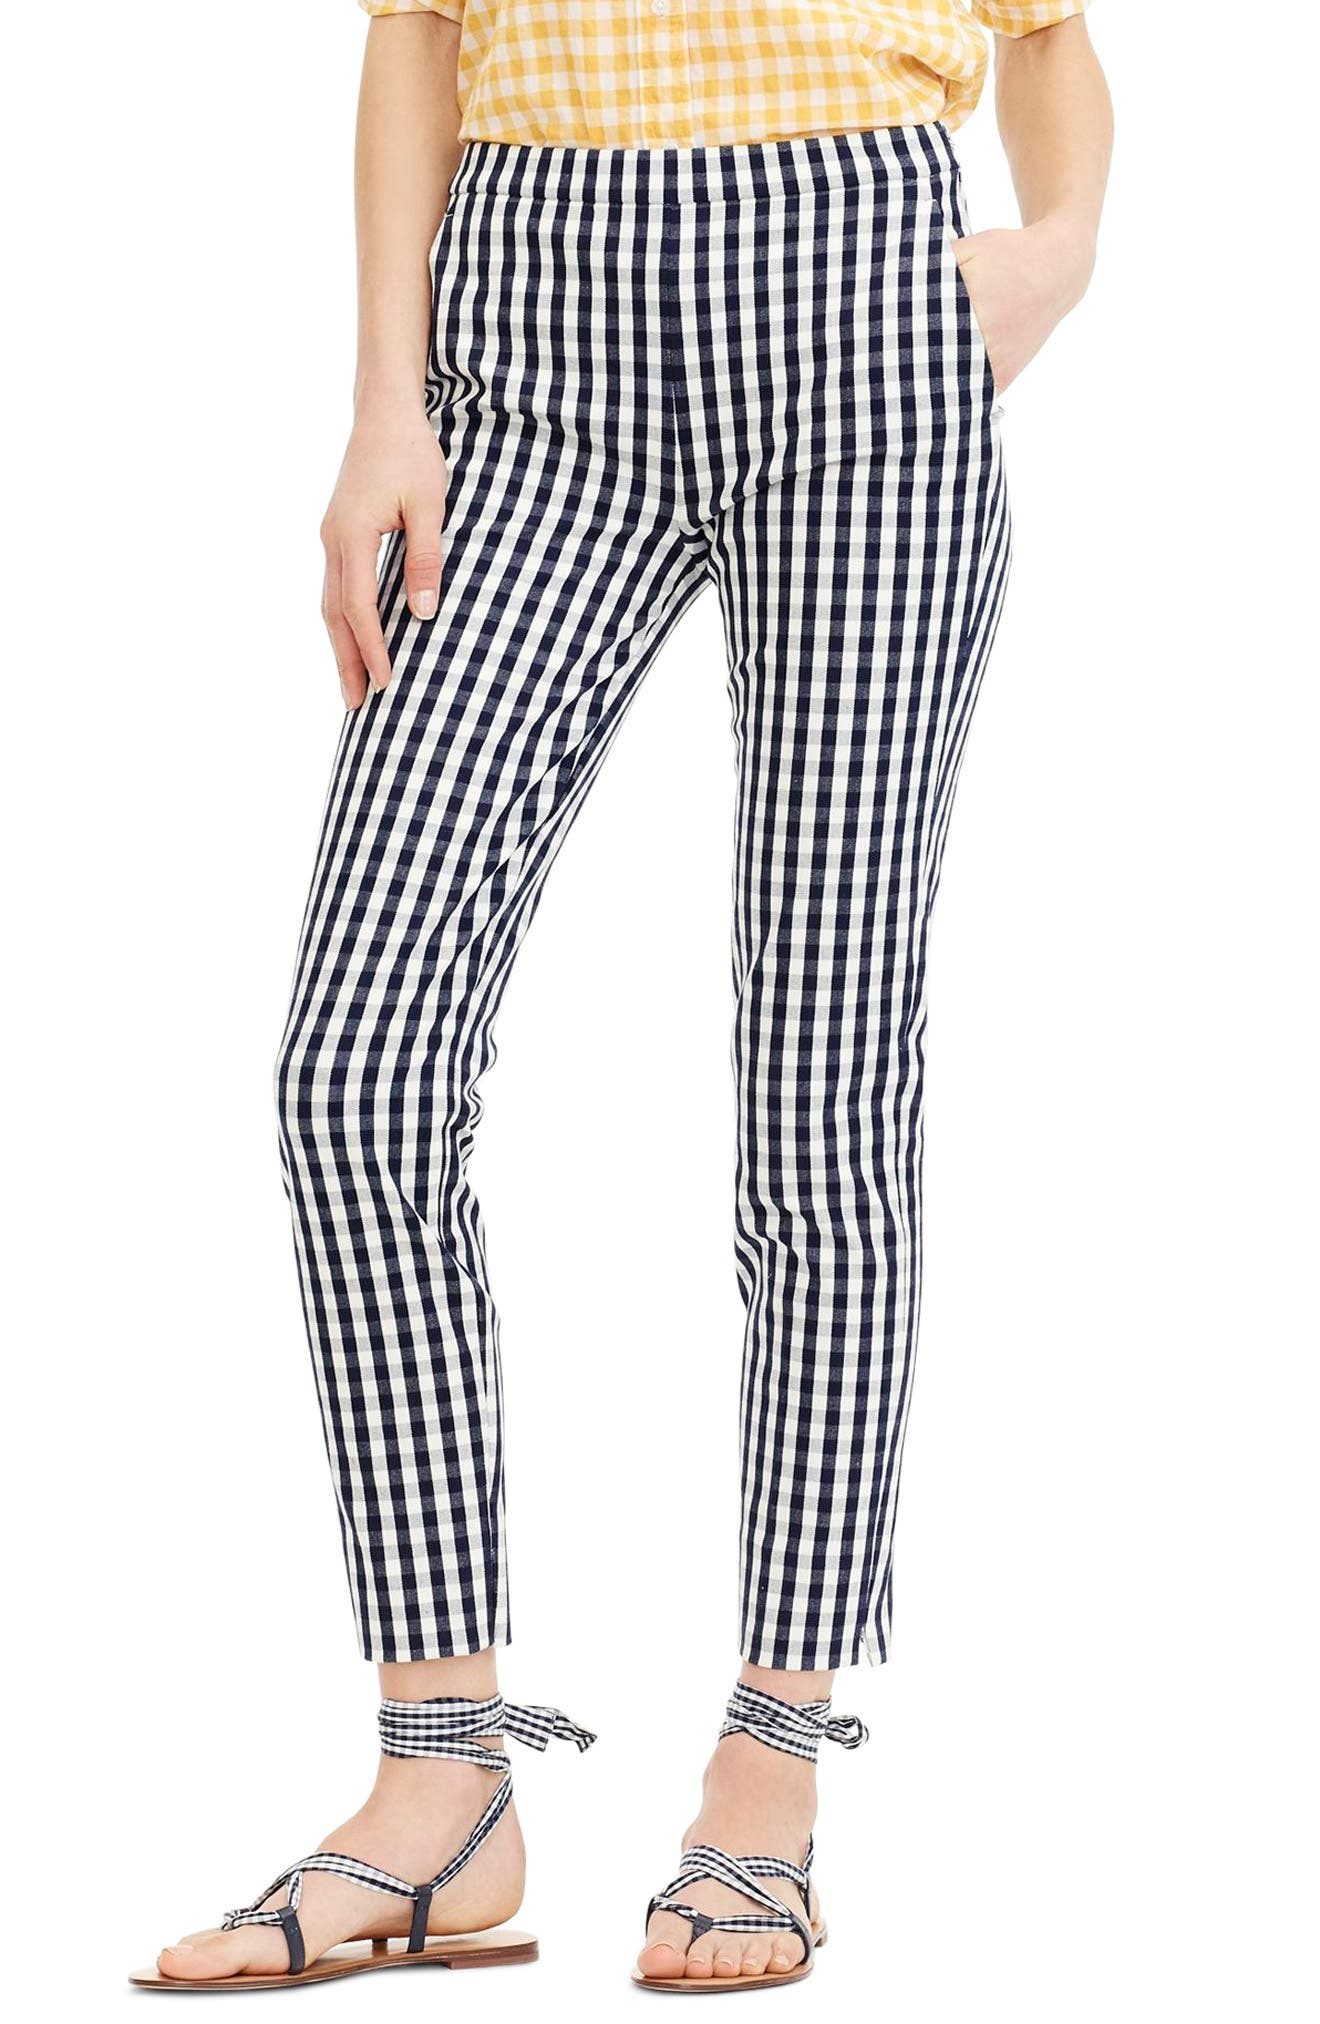 J.Crew Martie Gingham Stretch Cotton Pants (Regular & Petite)